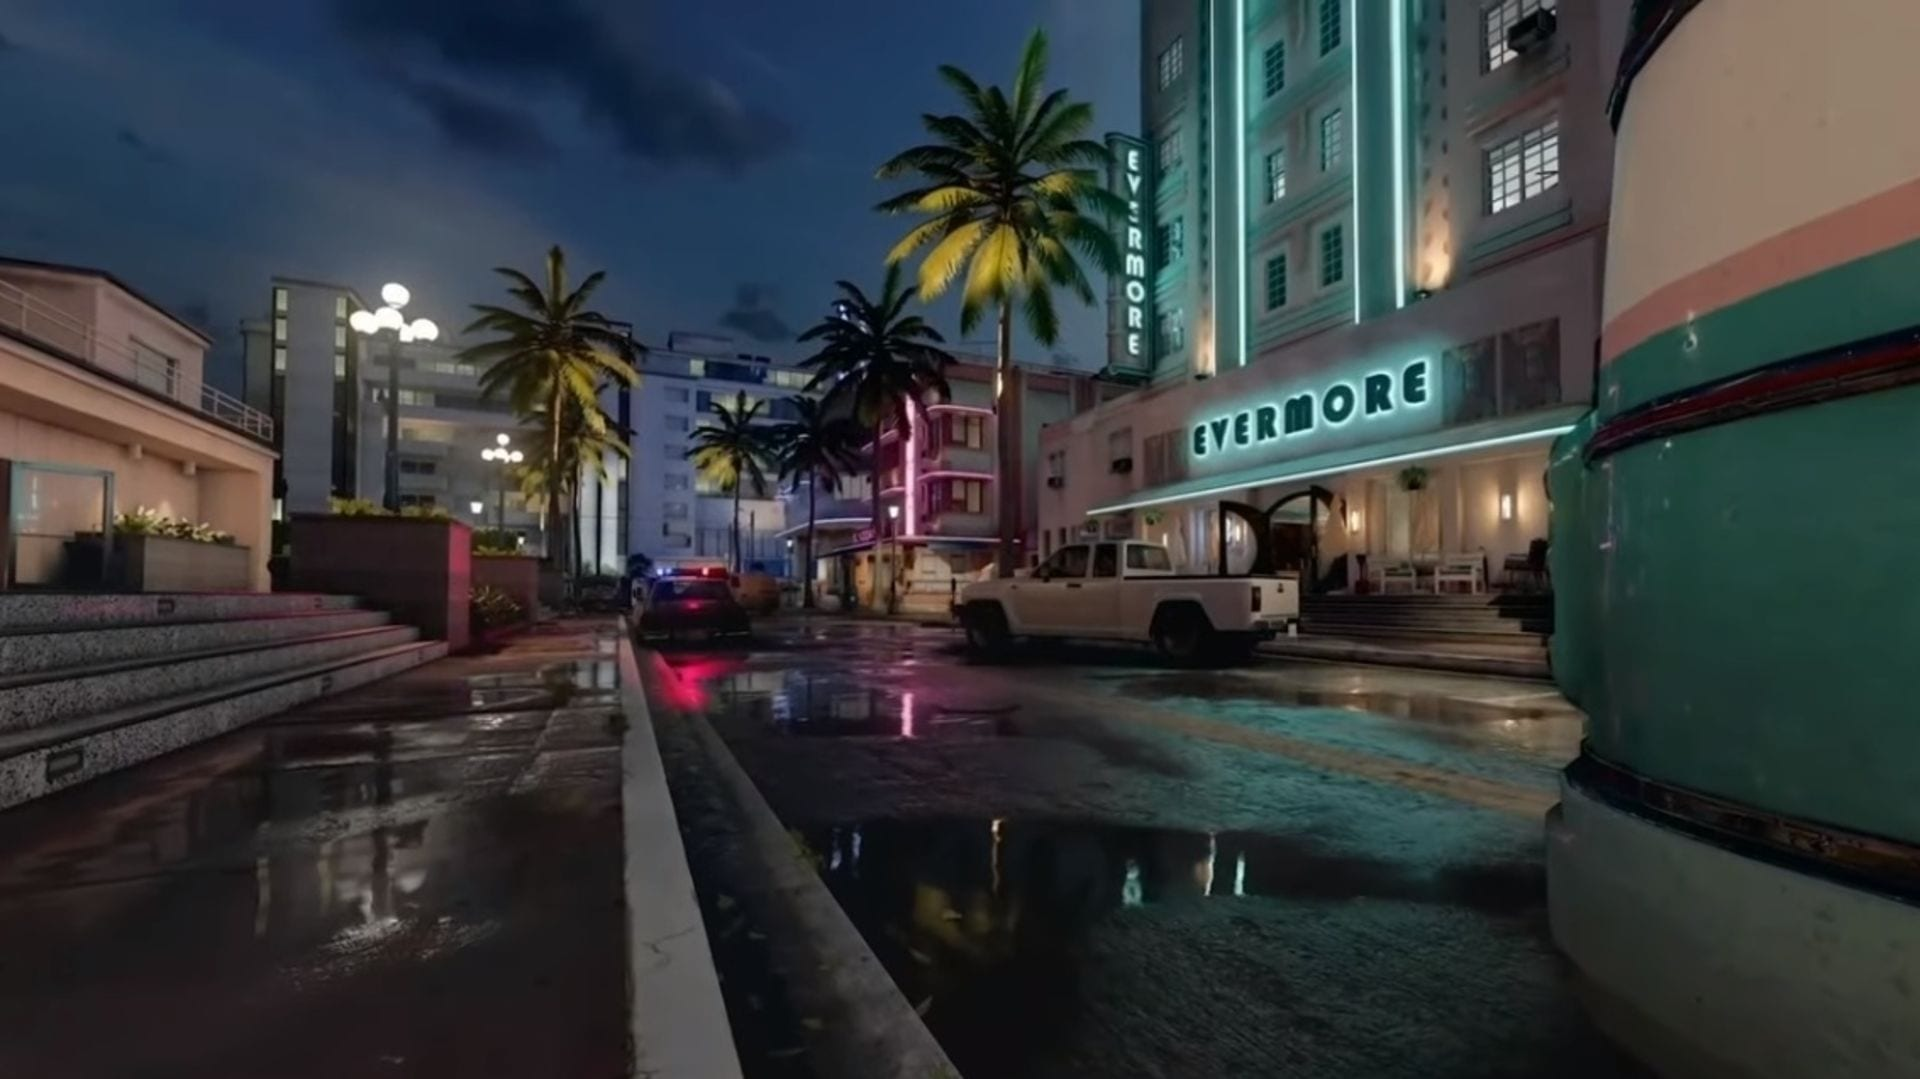 Call Of Duty: Black Ops Cold War Will Feel The Heat With New Miami Map